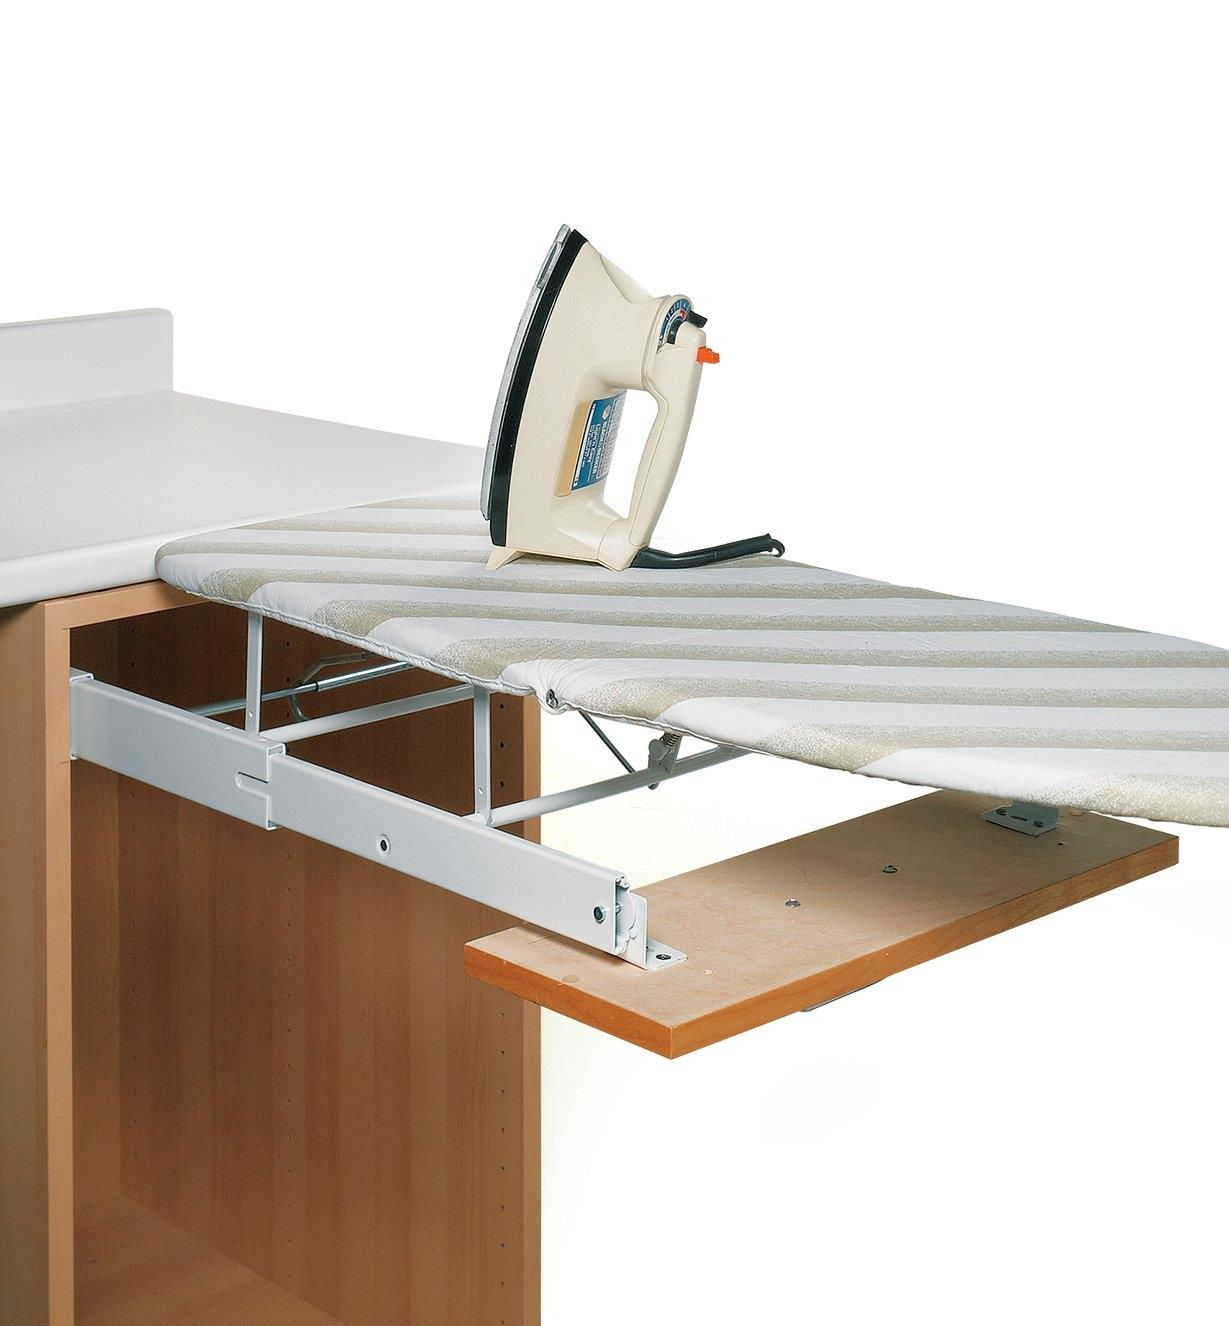 Drawer-Mount Folding Ironing Board unfolded with iron sitting on top